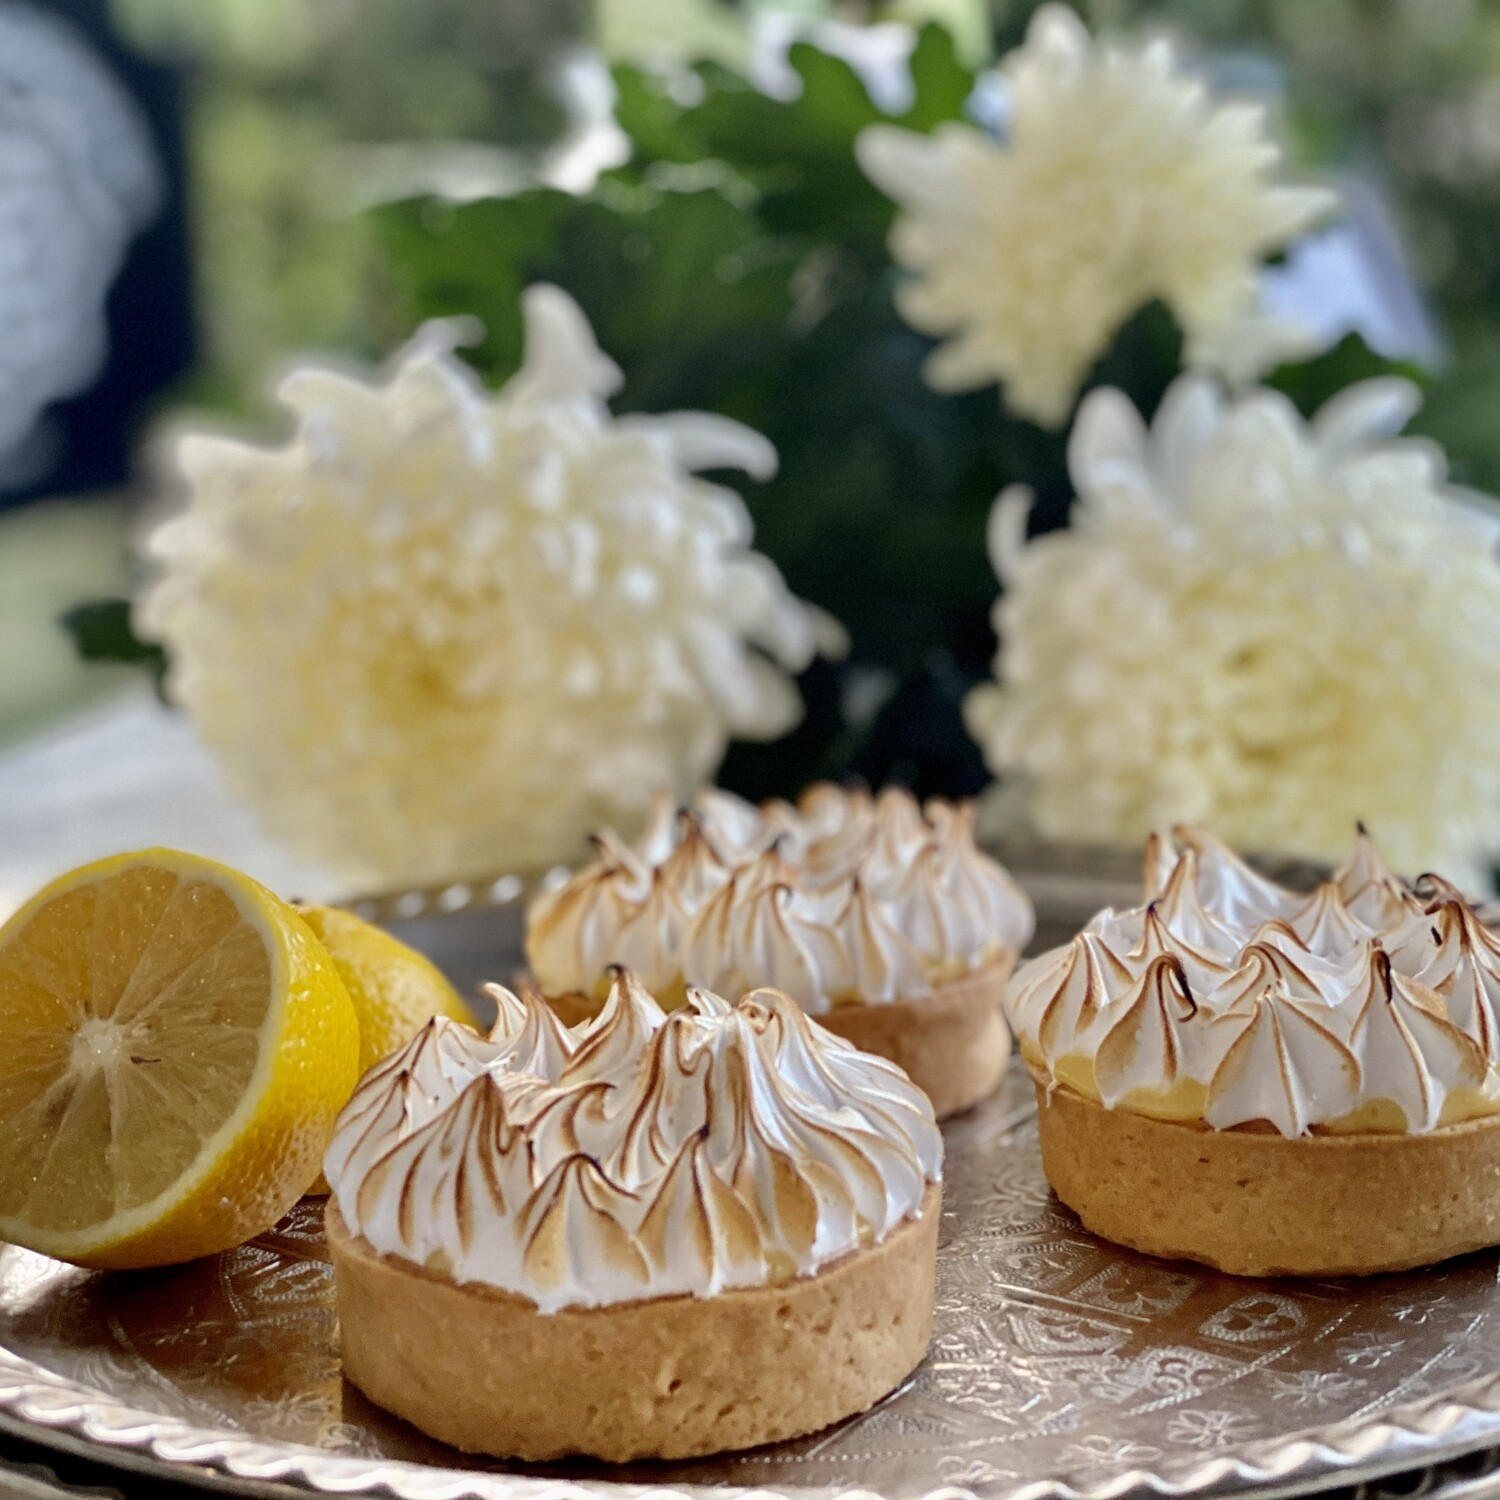 Lemon Meringue Tart (4 pkt)